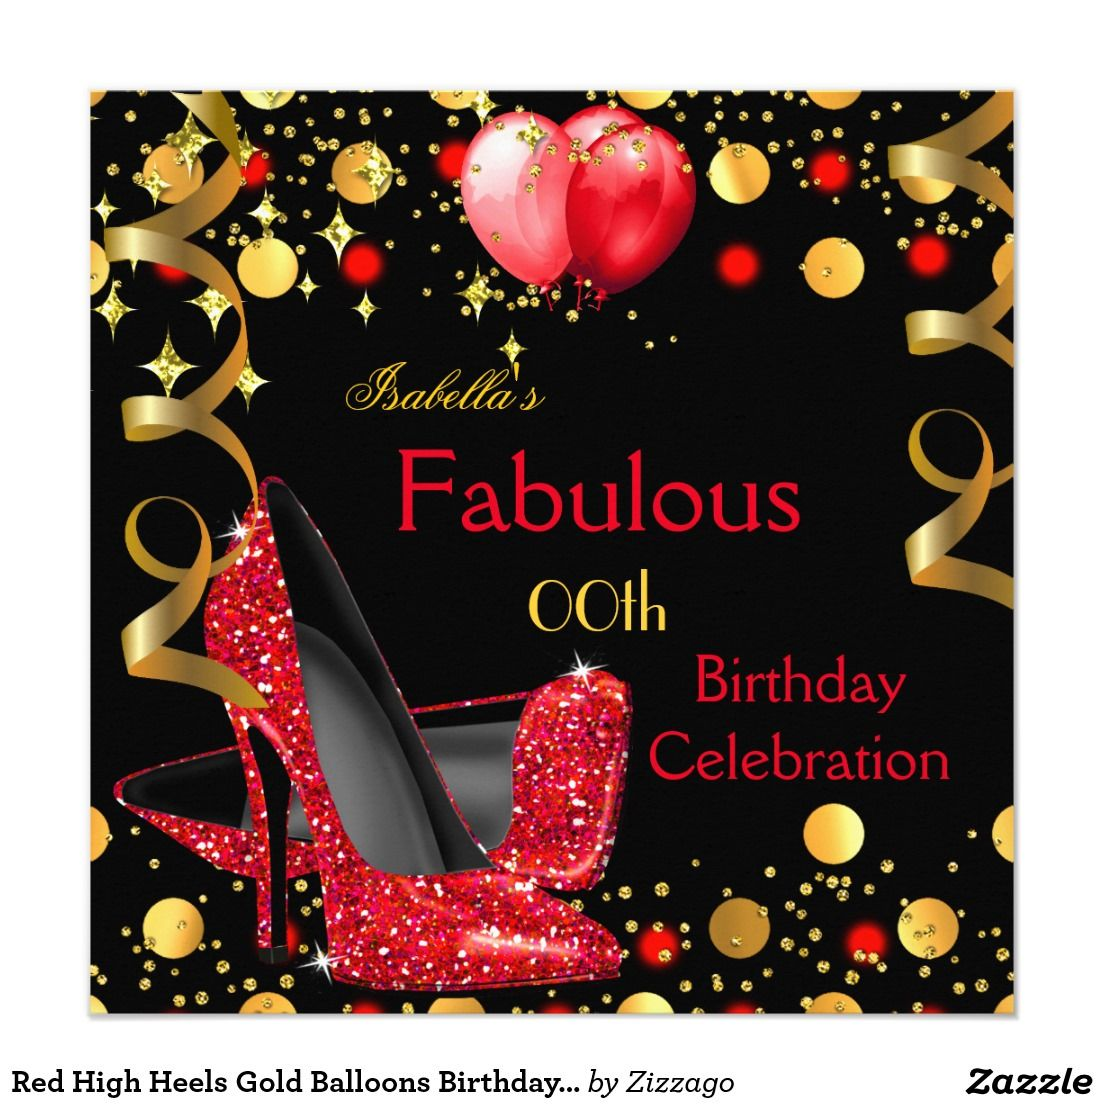 Red High Heels Gold Balloons Birthday Party Invitation | Pinterest ...